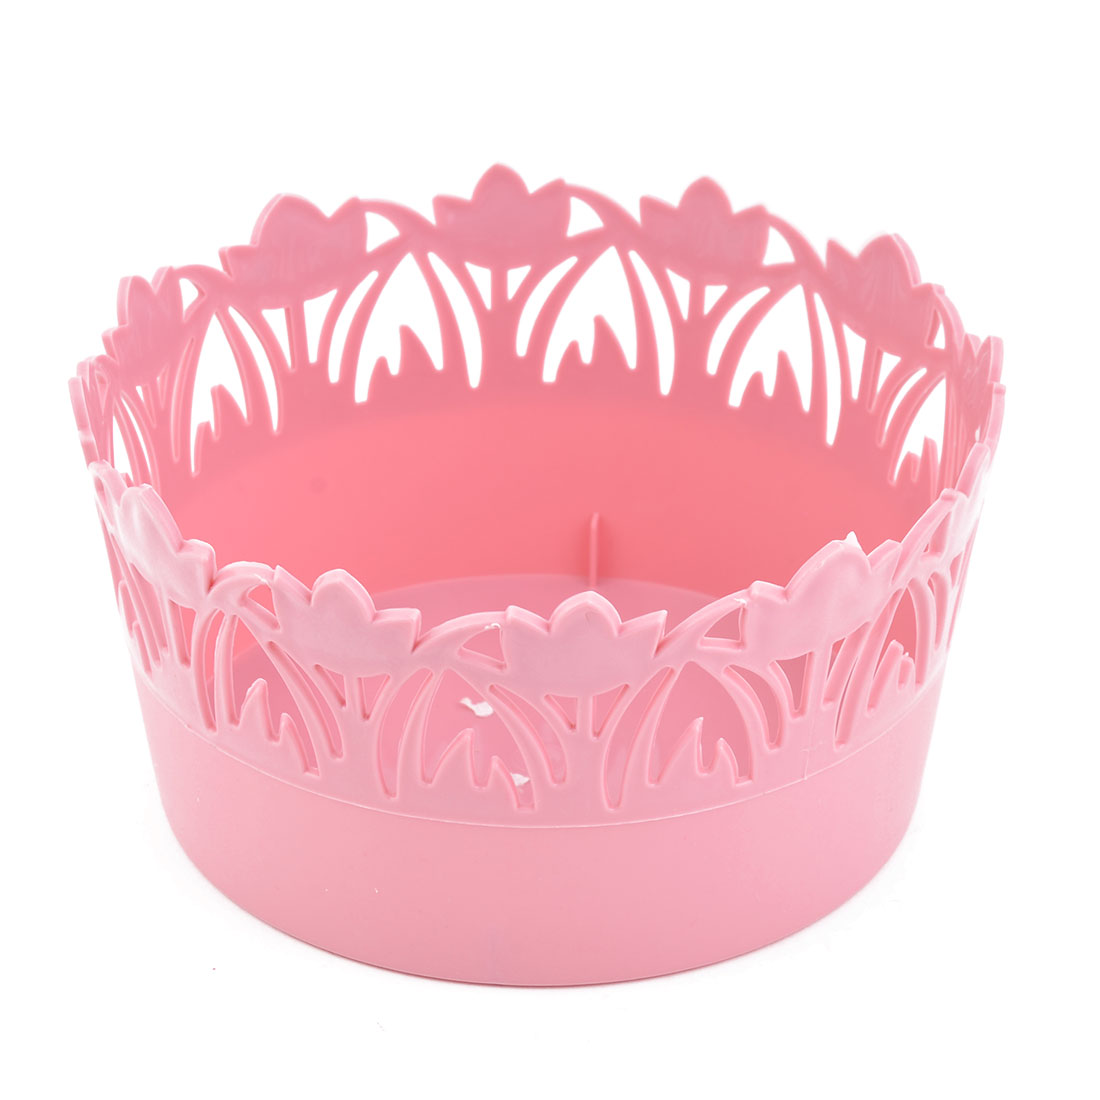 Home Plastic Flower Design Hollow Out Holder Storage Basket Box Container Pink